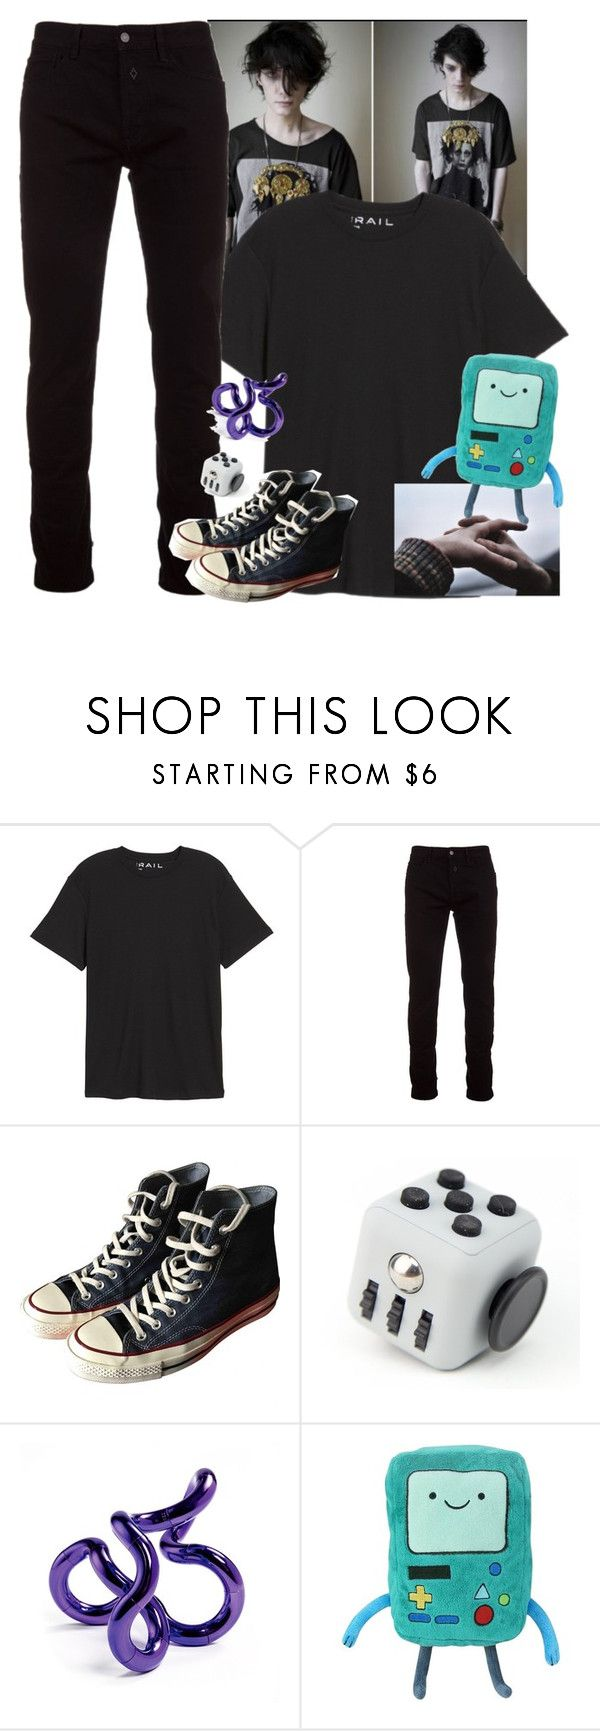 """they're gonna clean up your look, with all the lies in the book."" by coffeeshopgay ❤ liked on Polyvore featuring Public Opinion, Marcelo Burlon, Converse and bedroom"